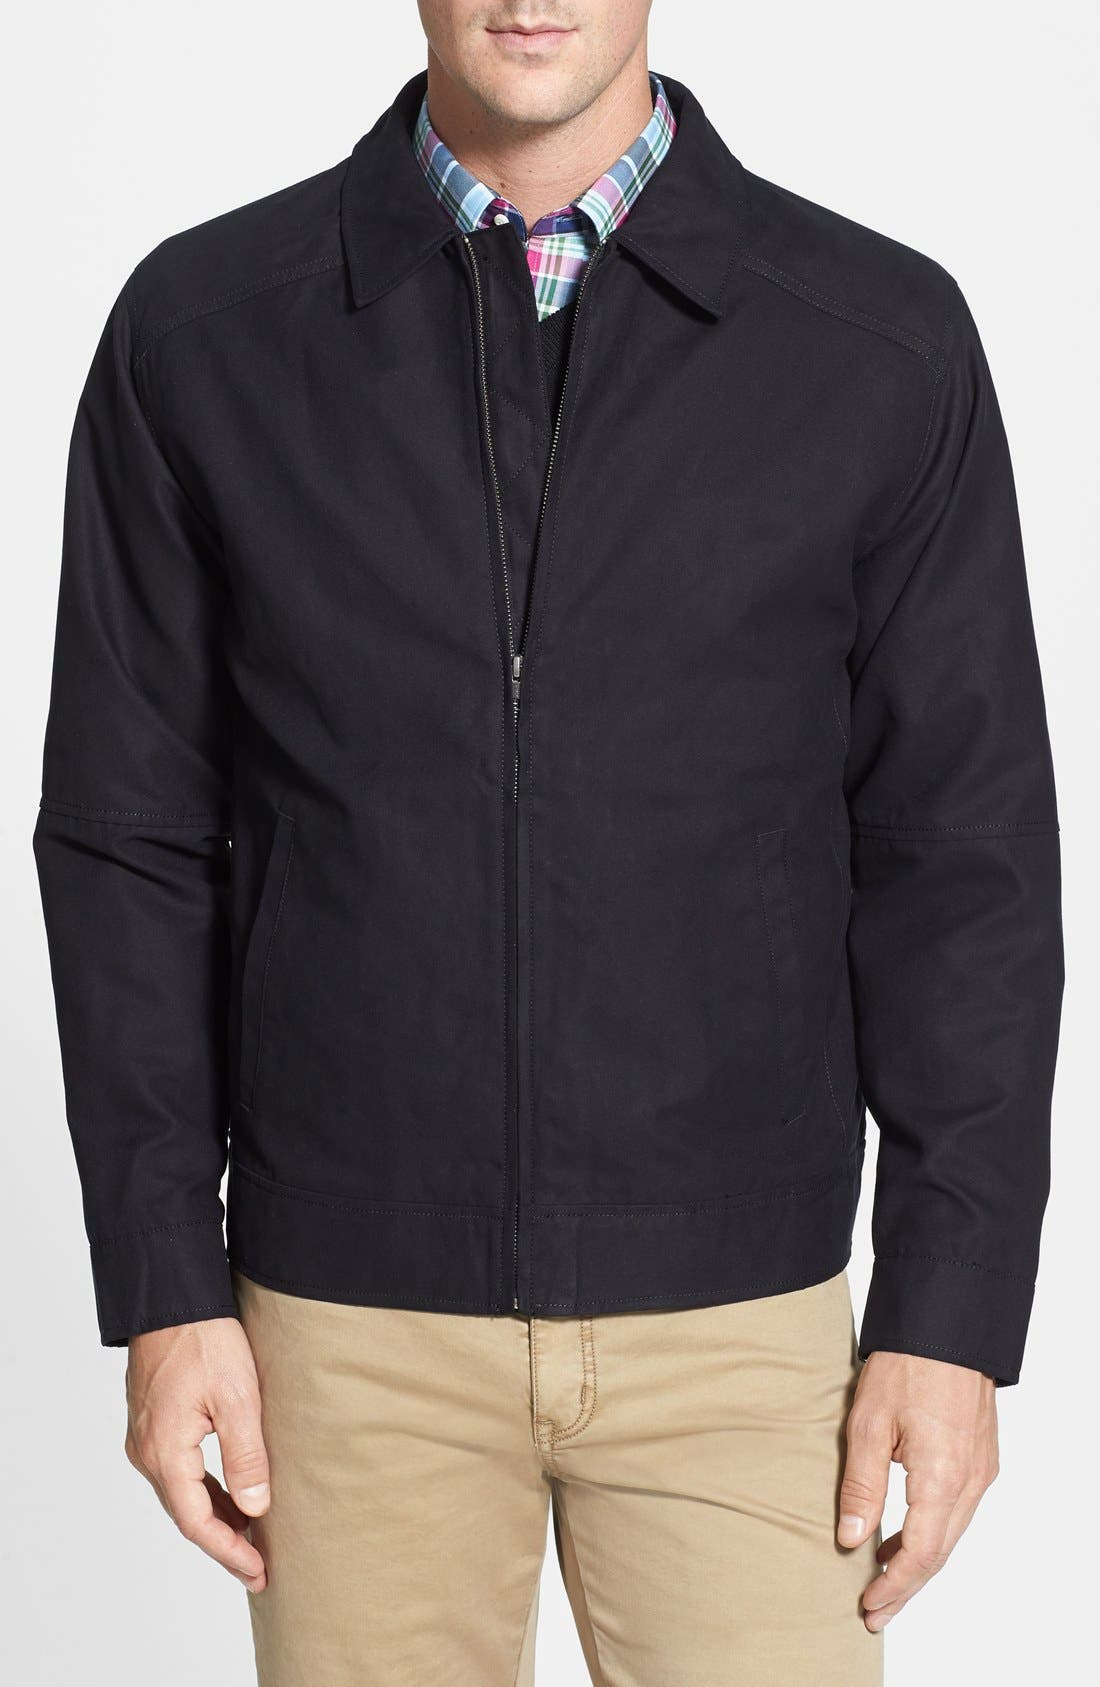 Roosevelt Water Resistant Full Zip Jacket,                         Main,                         color, BLACK